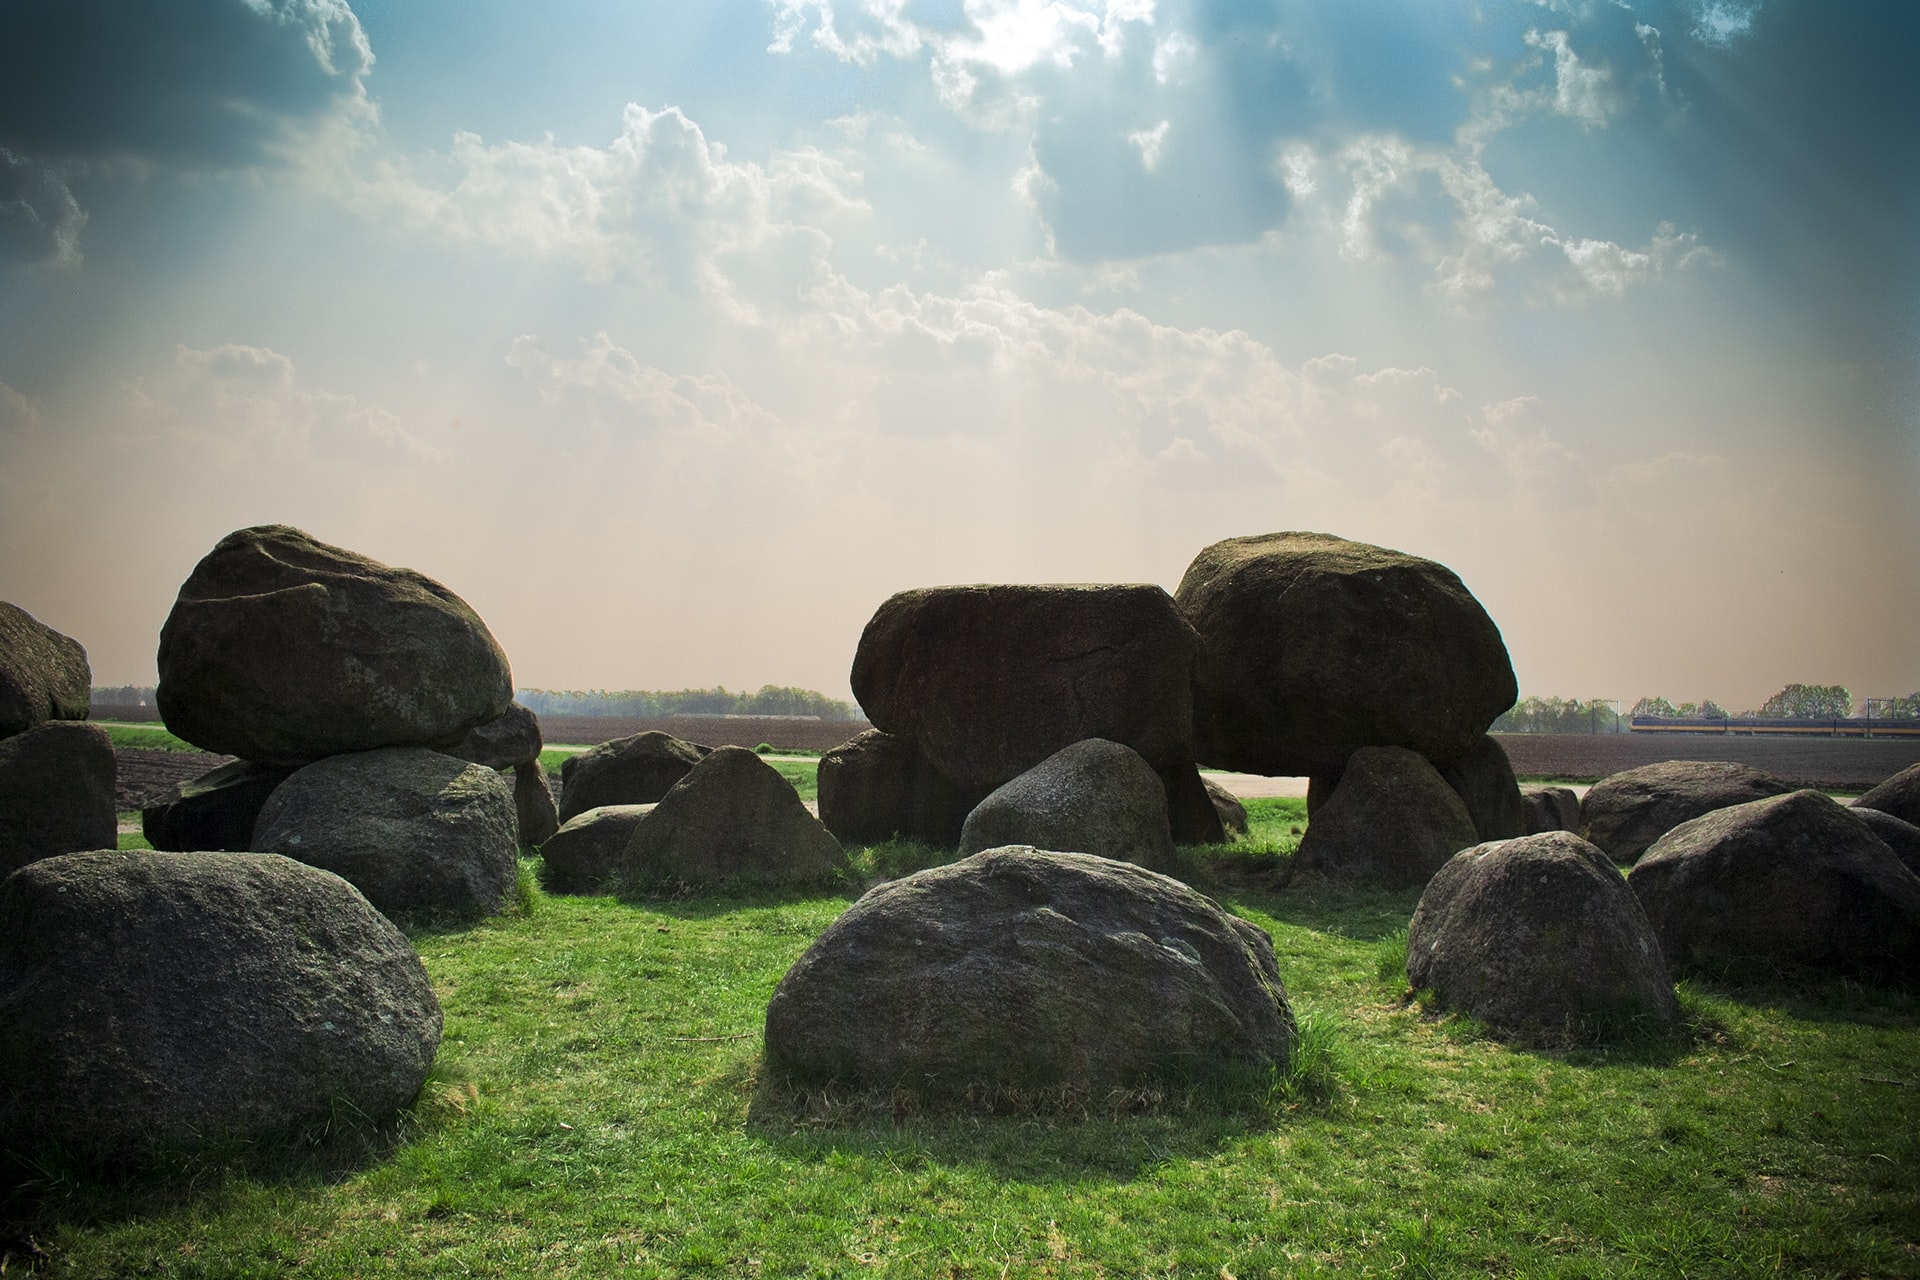 A series of large boulders on green grass under pale sunlight